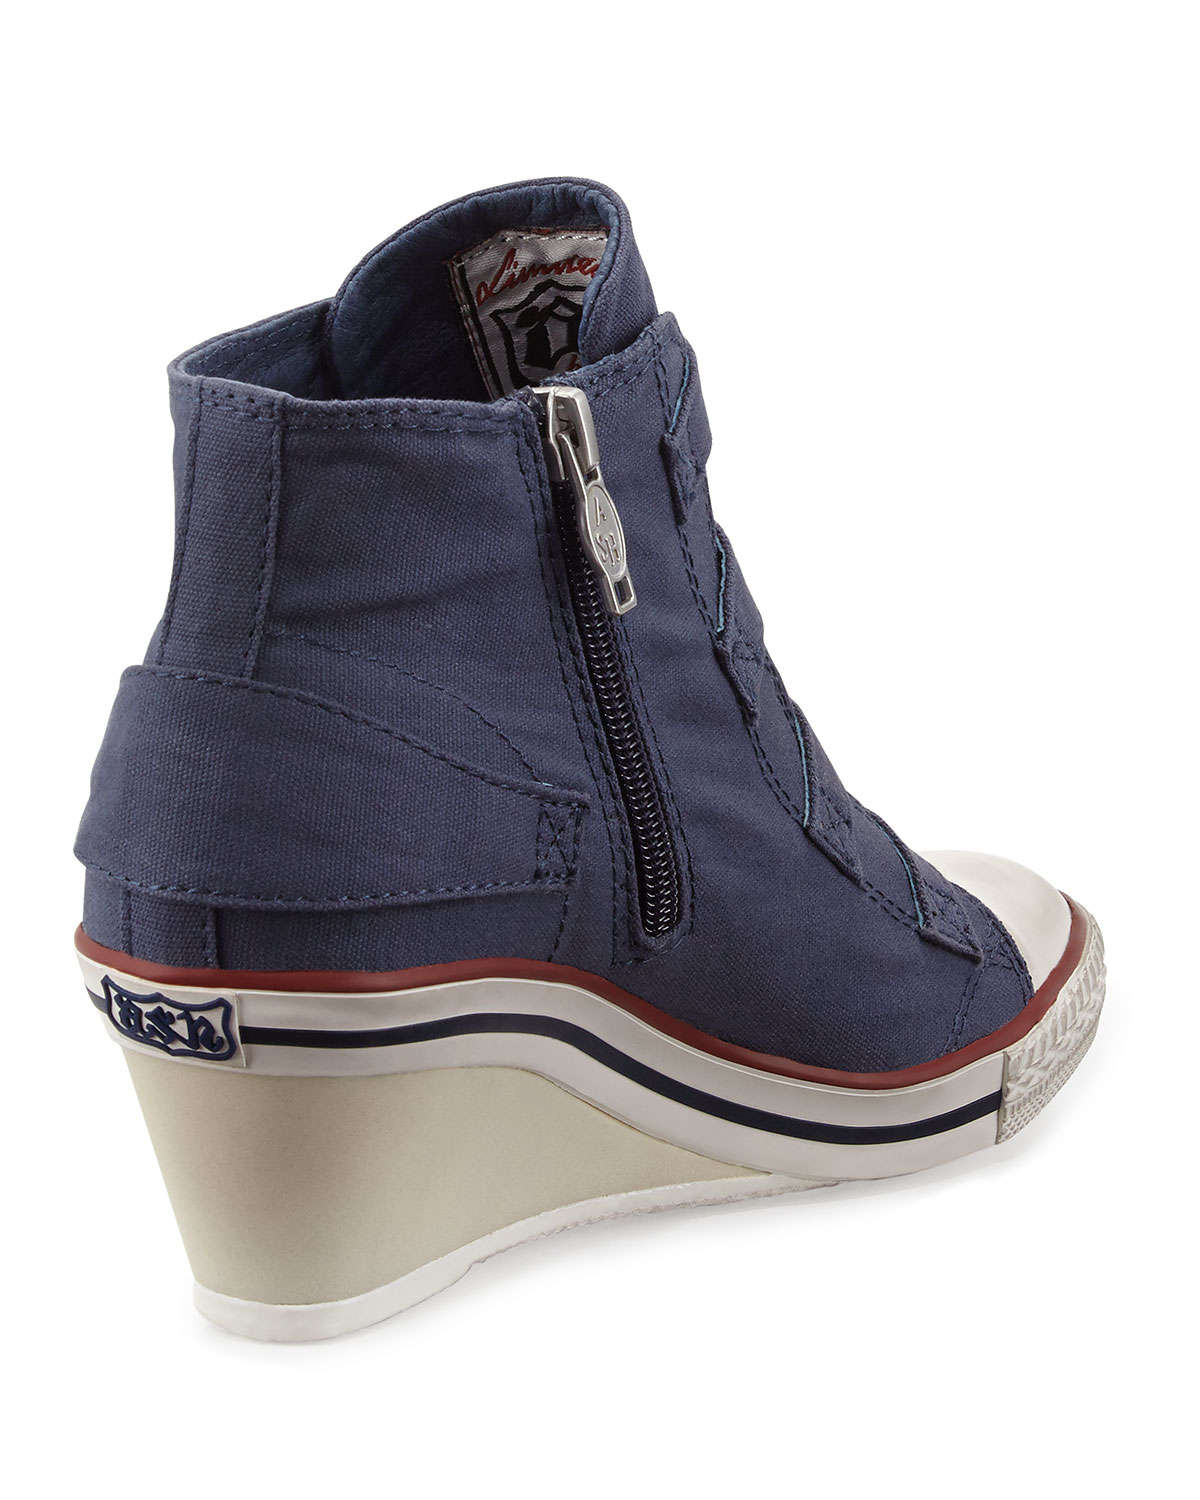 8f6e867dab97 Lyst - Ash Genialbis Buckled Wedge Sneakers in Blue